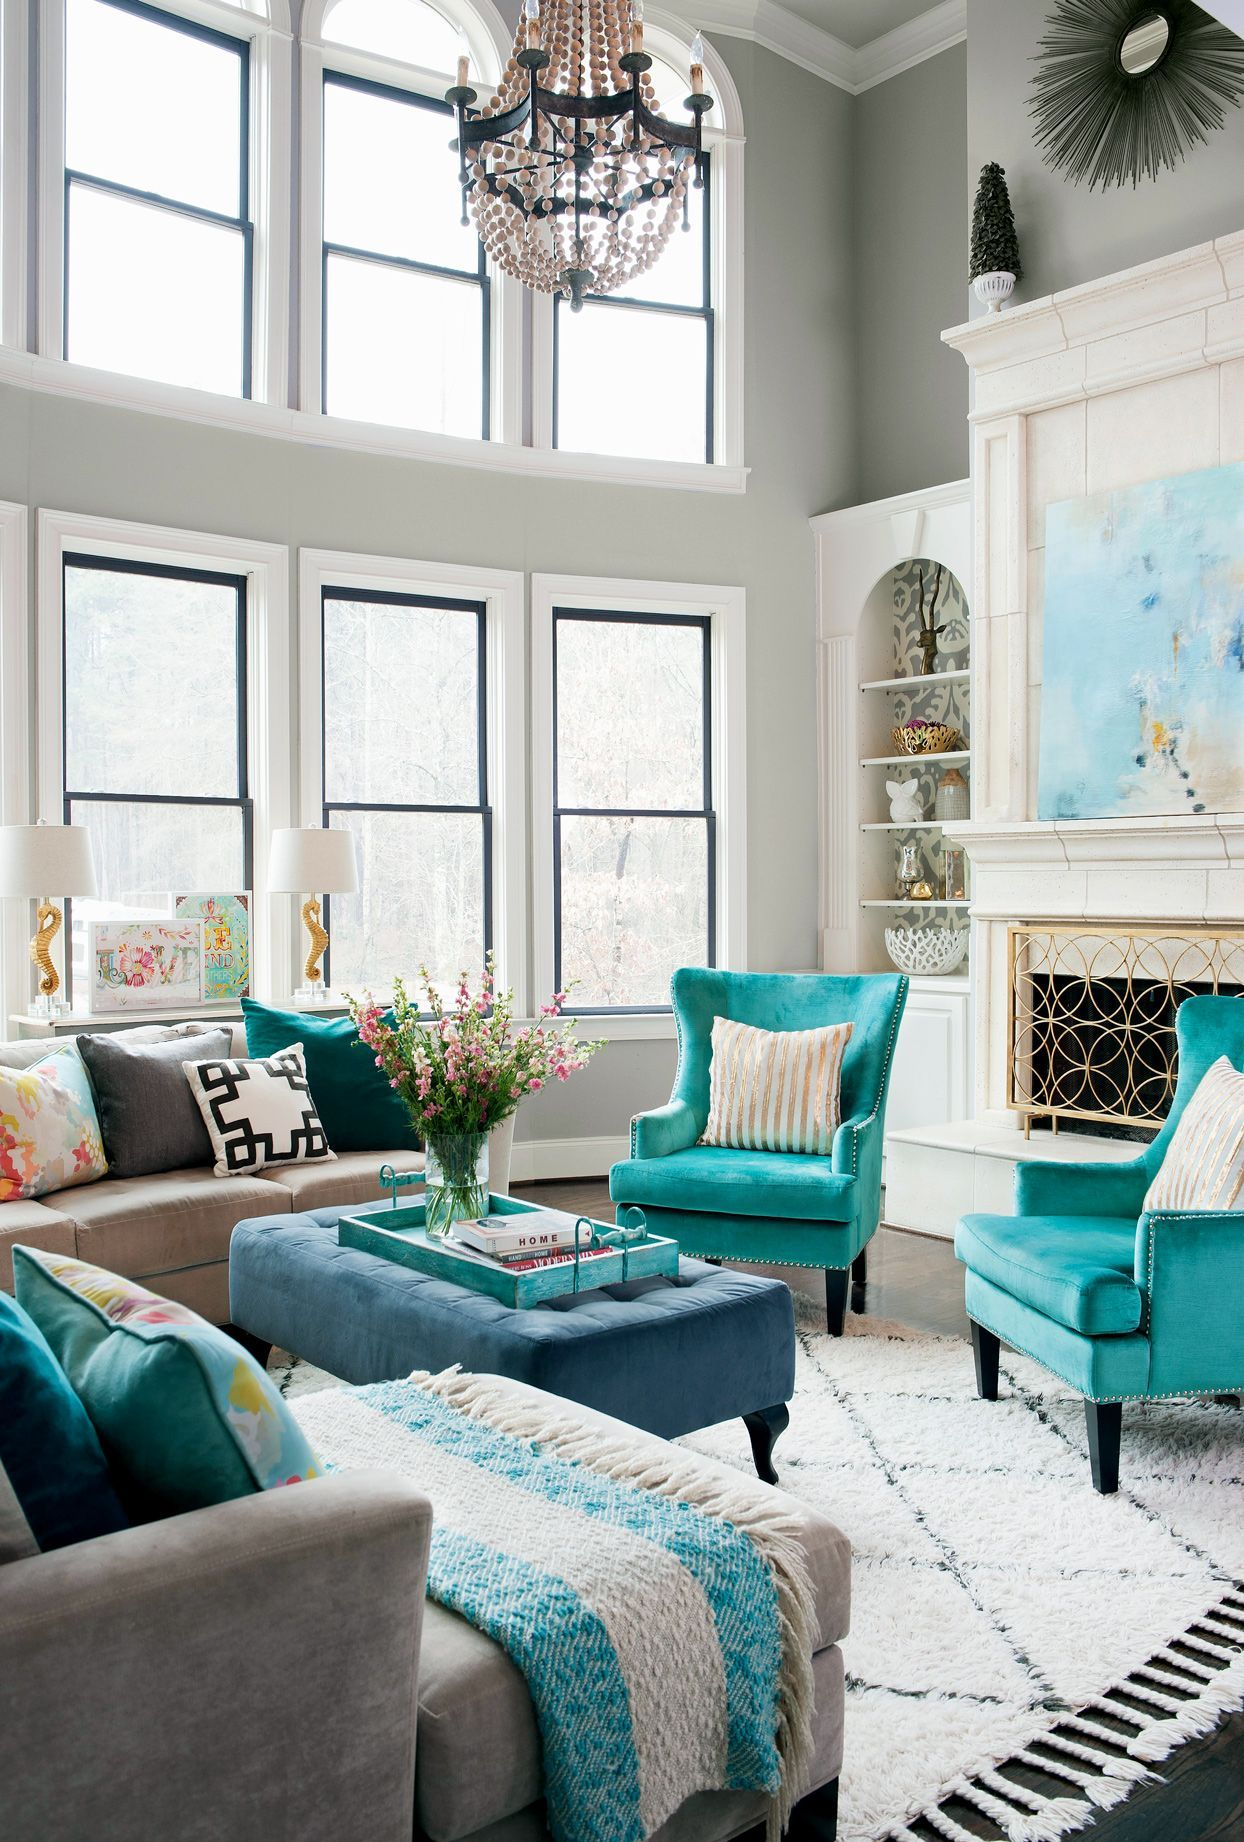 20 Living Room Furniture Arrangement Ideas For Any Size Space In 2021 Living Room Color Schemes Living Room Grey Living Room Color Living room themes ideas